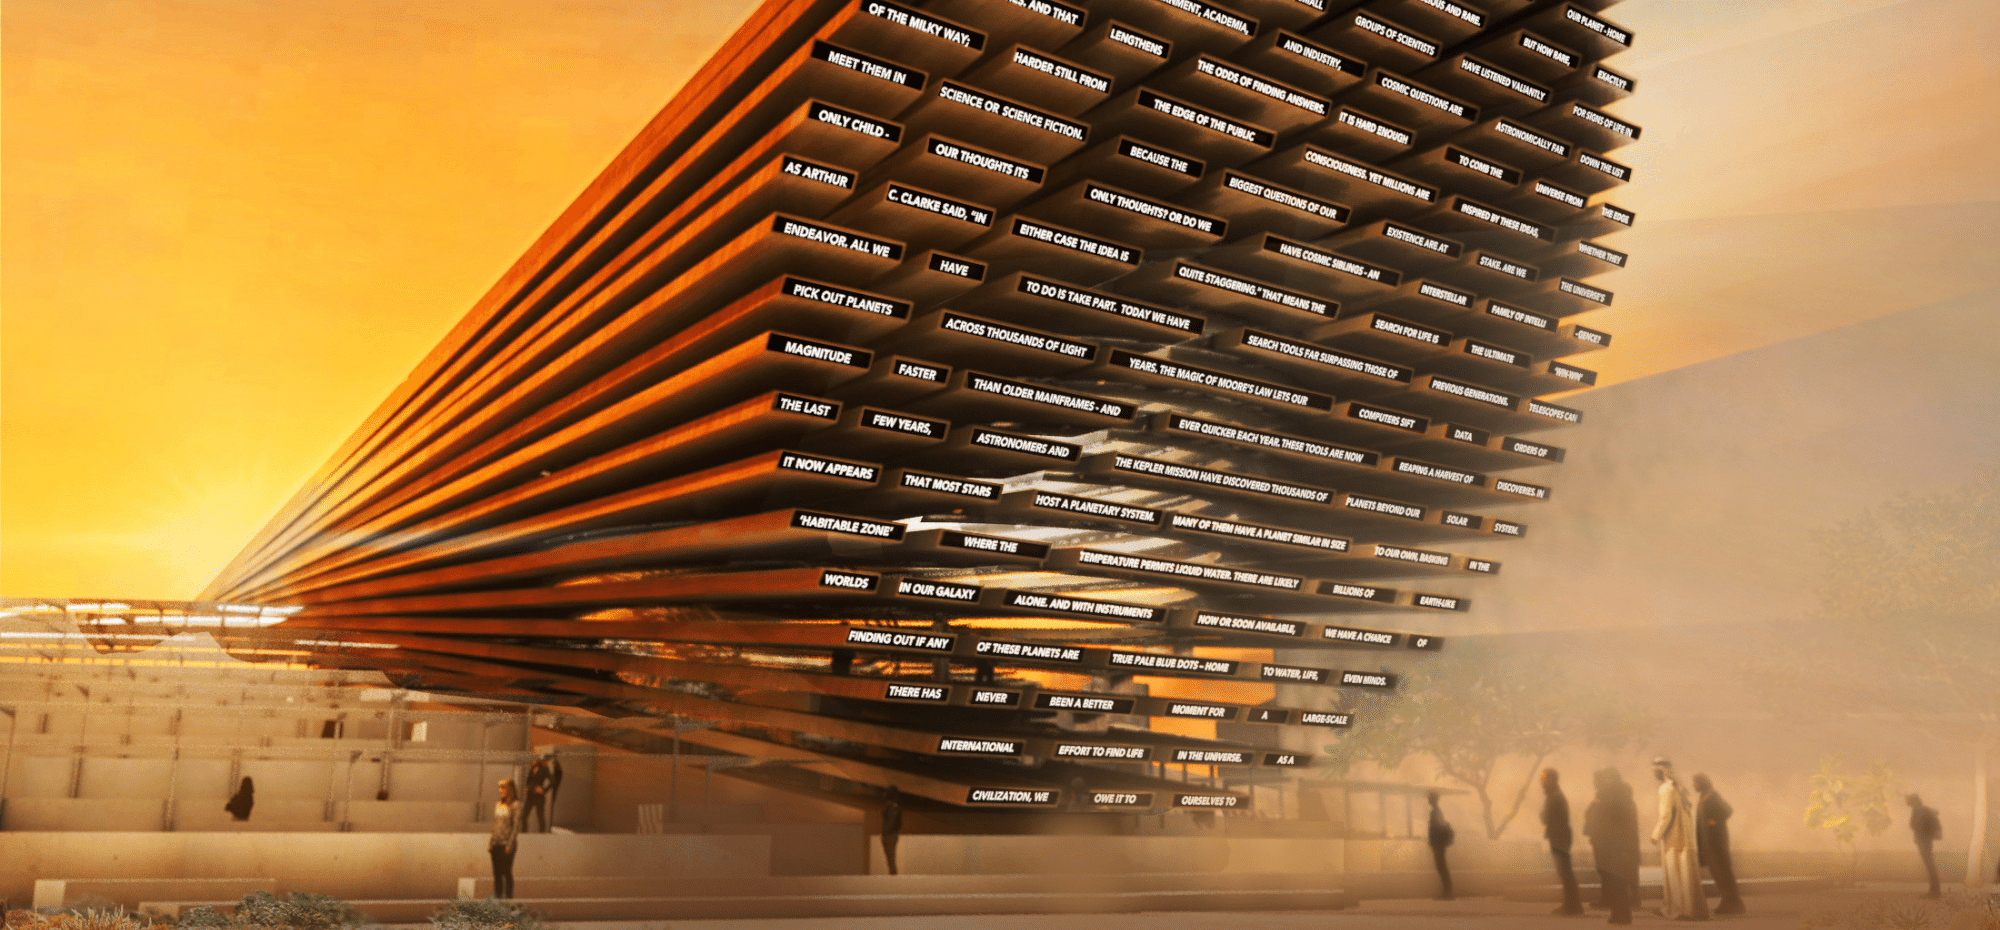 uk pavilion for expo 2020 dubai to send message to space